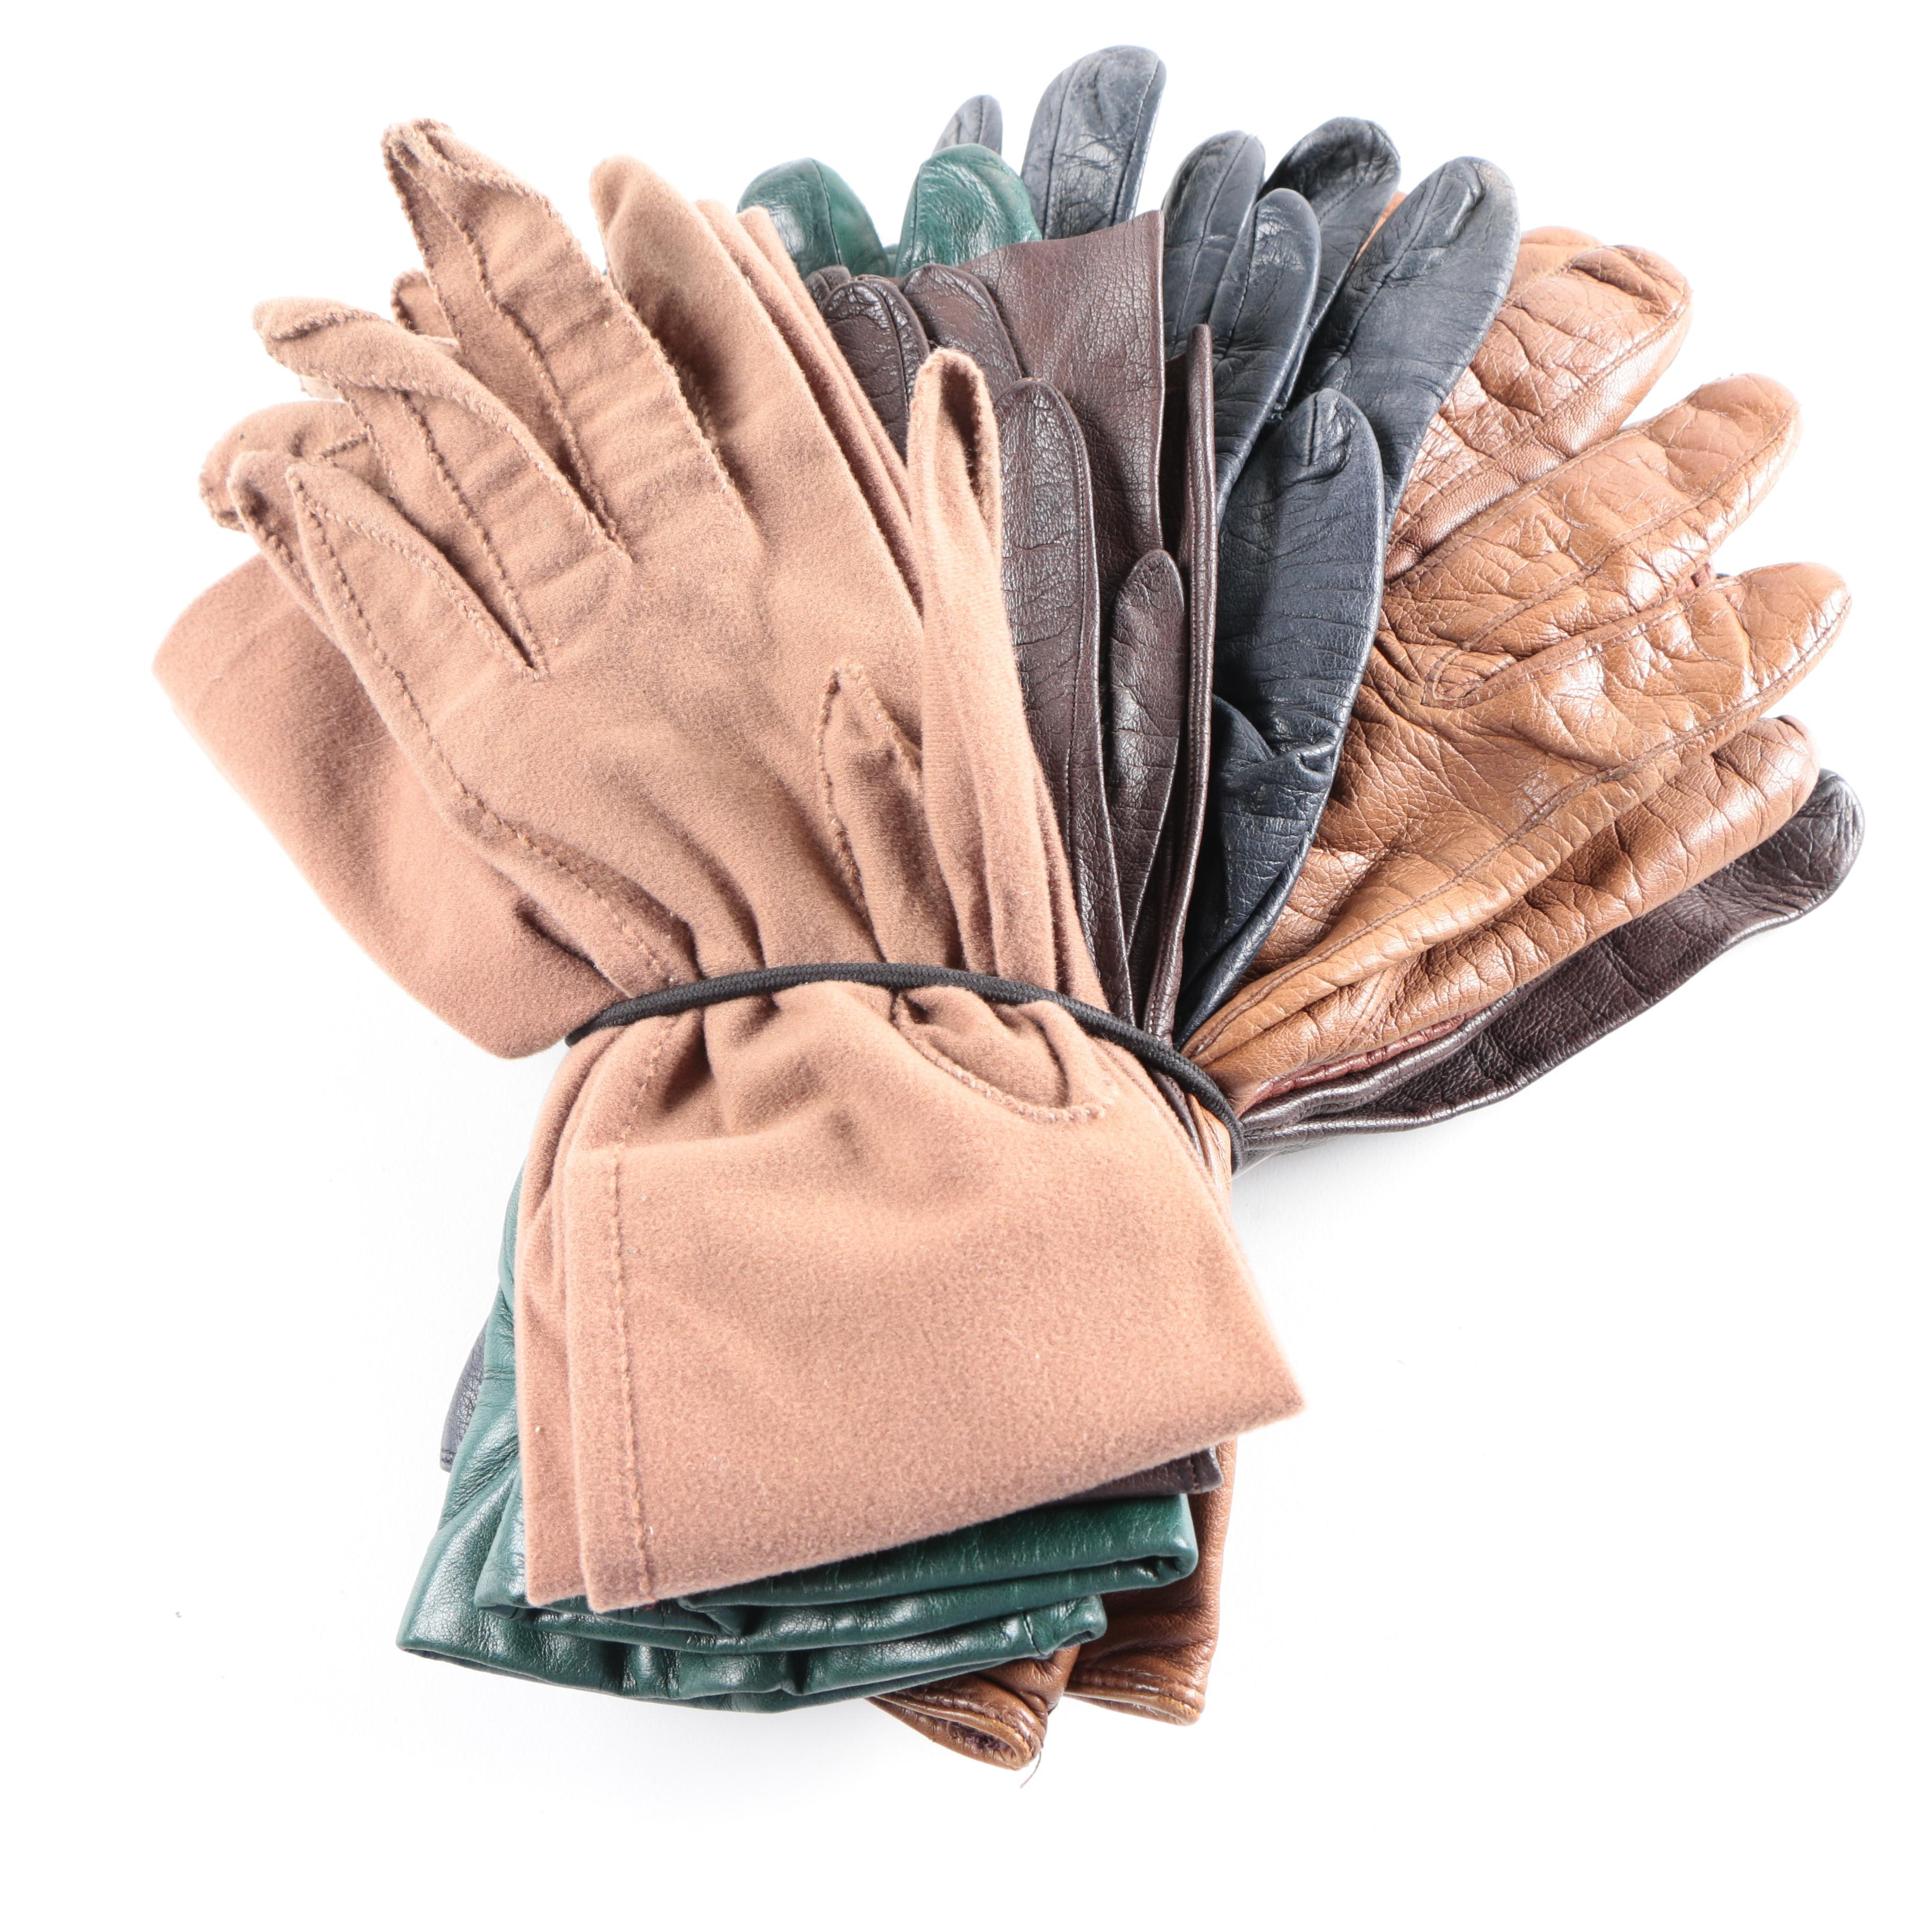 Vintage Ladies' Leather and Cloth Gloves